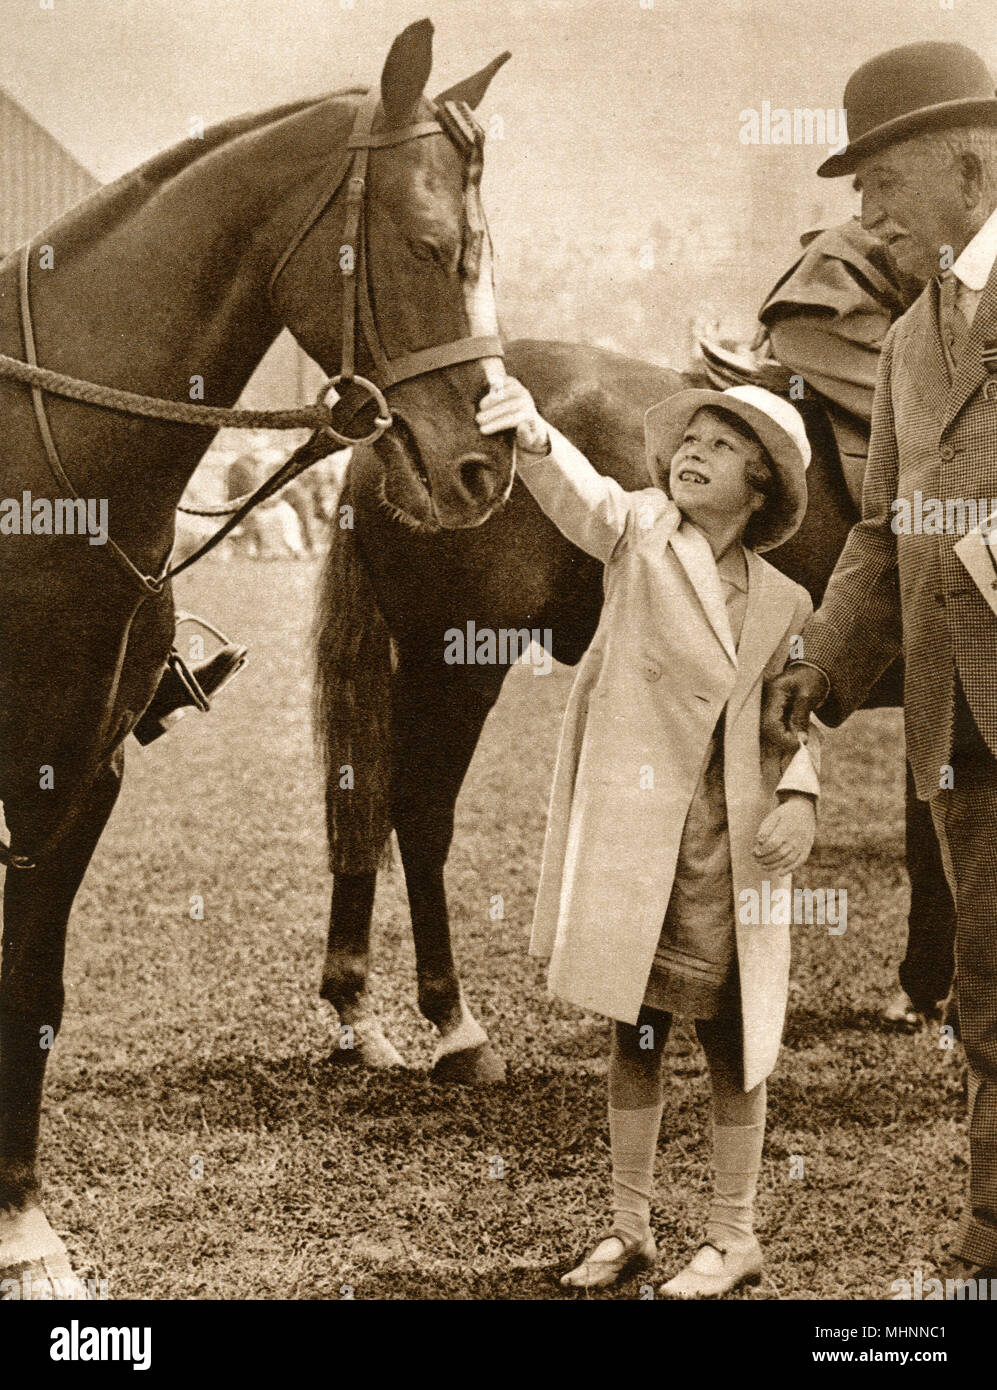 June 15th 1934 - Princess Elizabeth (later Queen Elizabeth II 1926-) meets a champion pony at the Richmond Horse Show (a class of entry she was apparently particularly interested in).     Date: 1934 - Stock Image